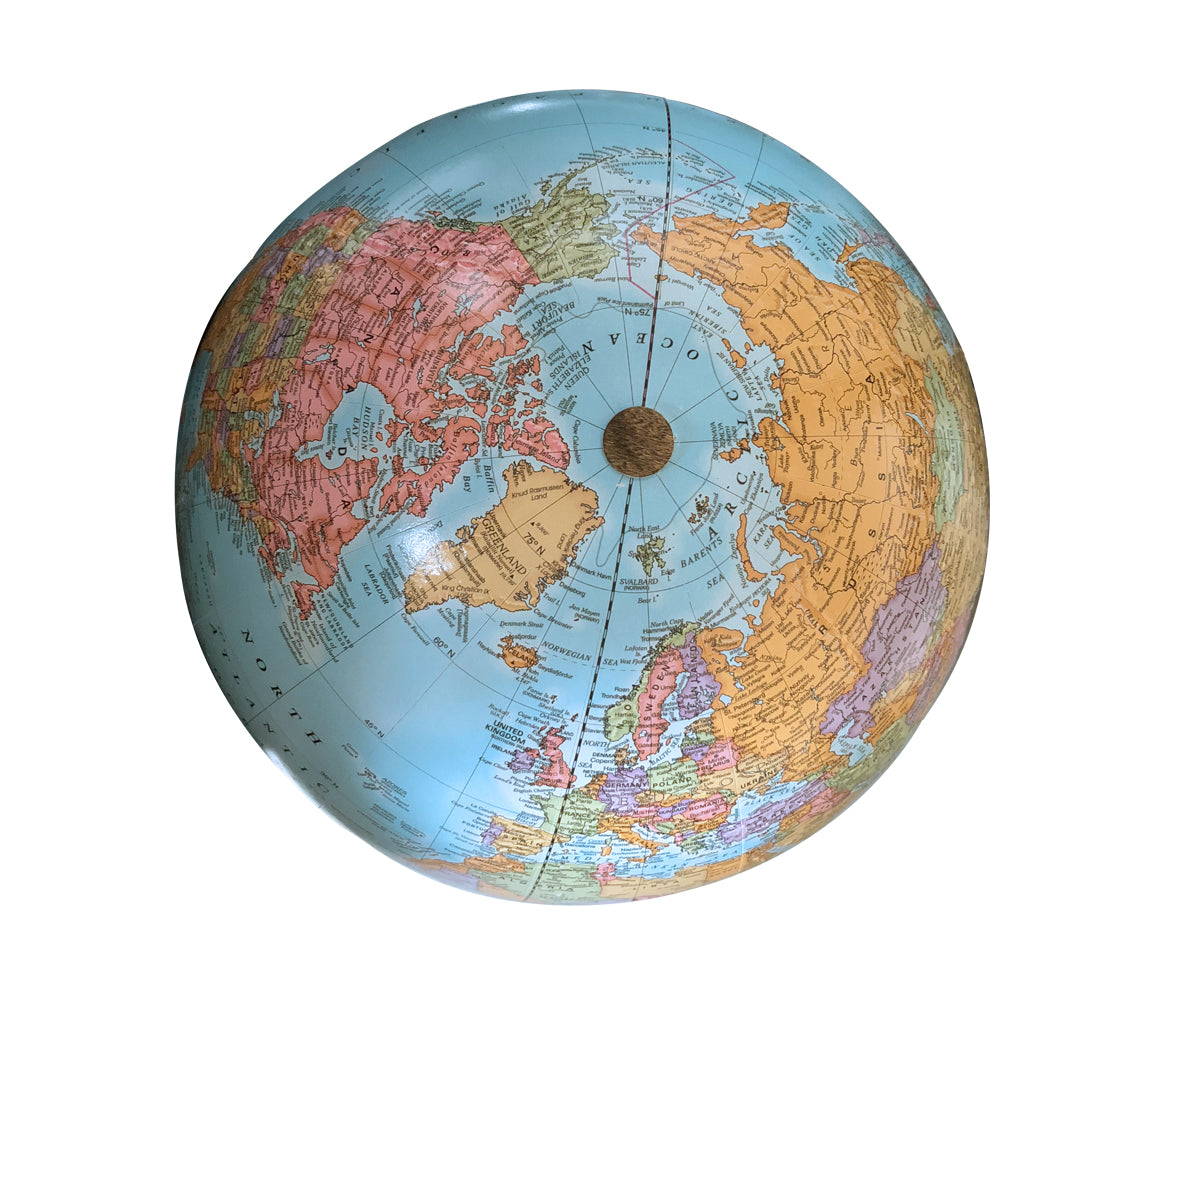 9 Inch Blue Classic Desk Globe with Handmade Stained Wood Base